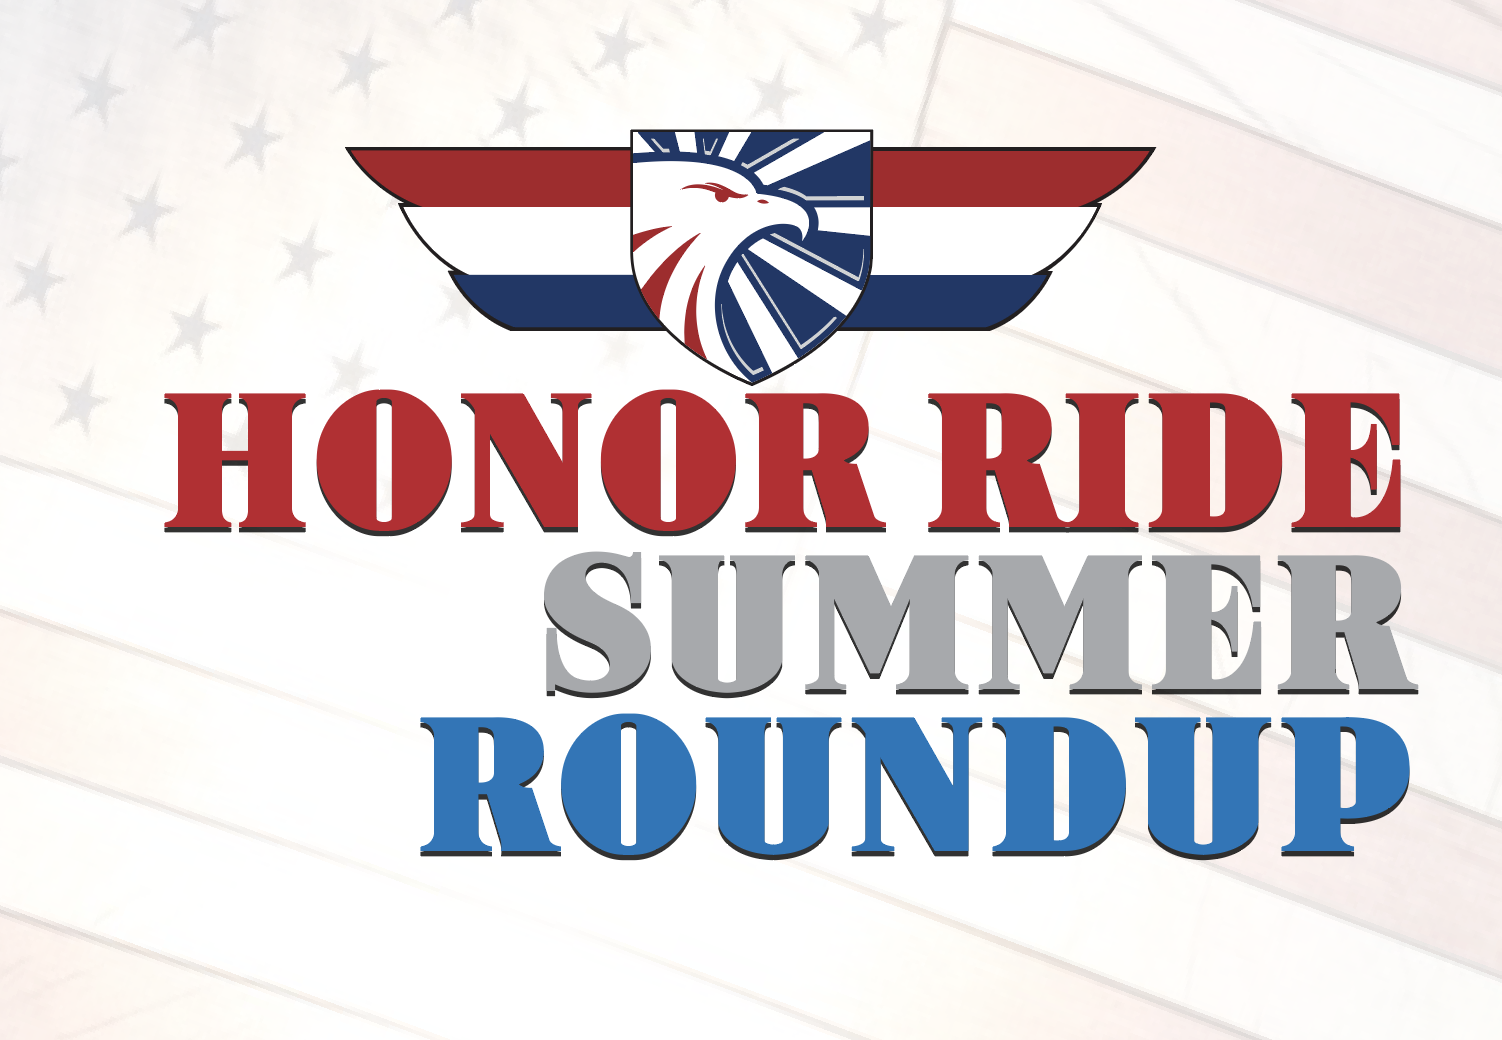 HONOR RIDE SUMMER ROUNDUP